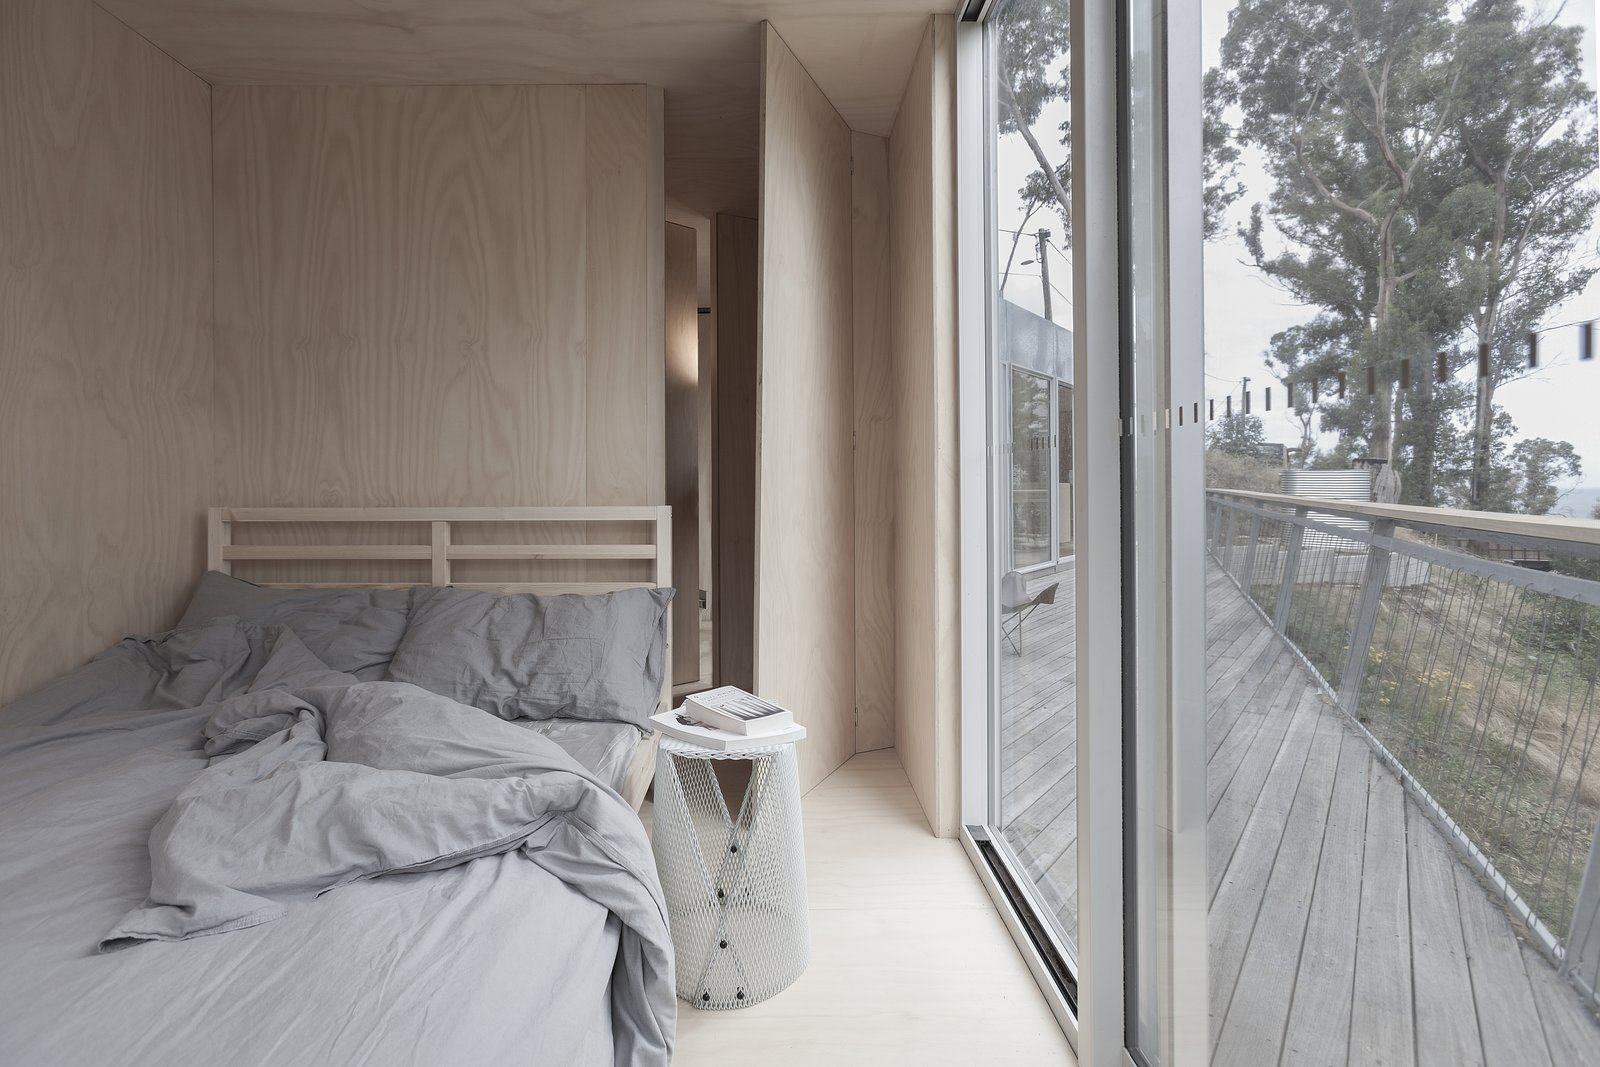 Bedroom, Plywood Floor, Night Stands, and Bed The two bedrooms were made to be equally simplistic, with just enough to feel comfortable.  Photo 5 of 8 in This Off-Grid Container Home in Australia Disappears in Nature